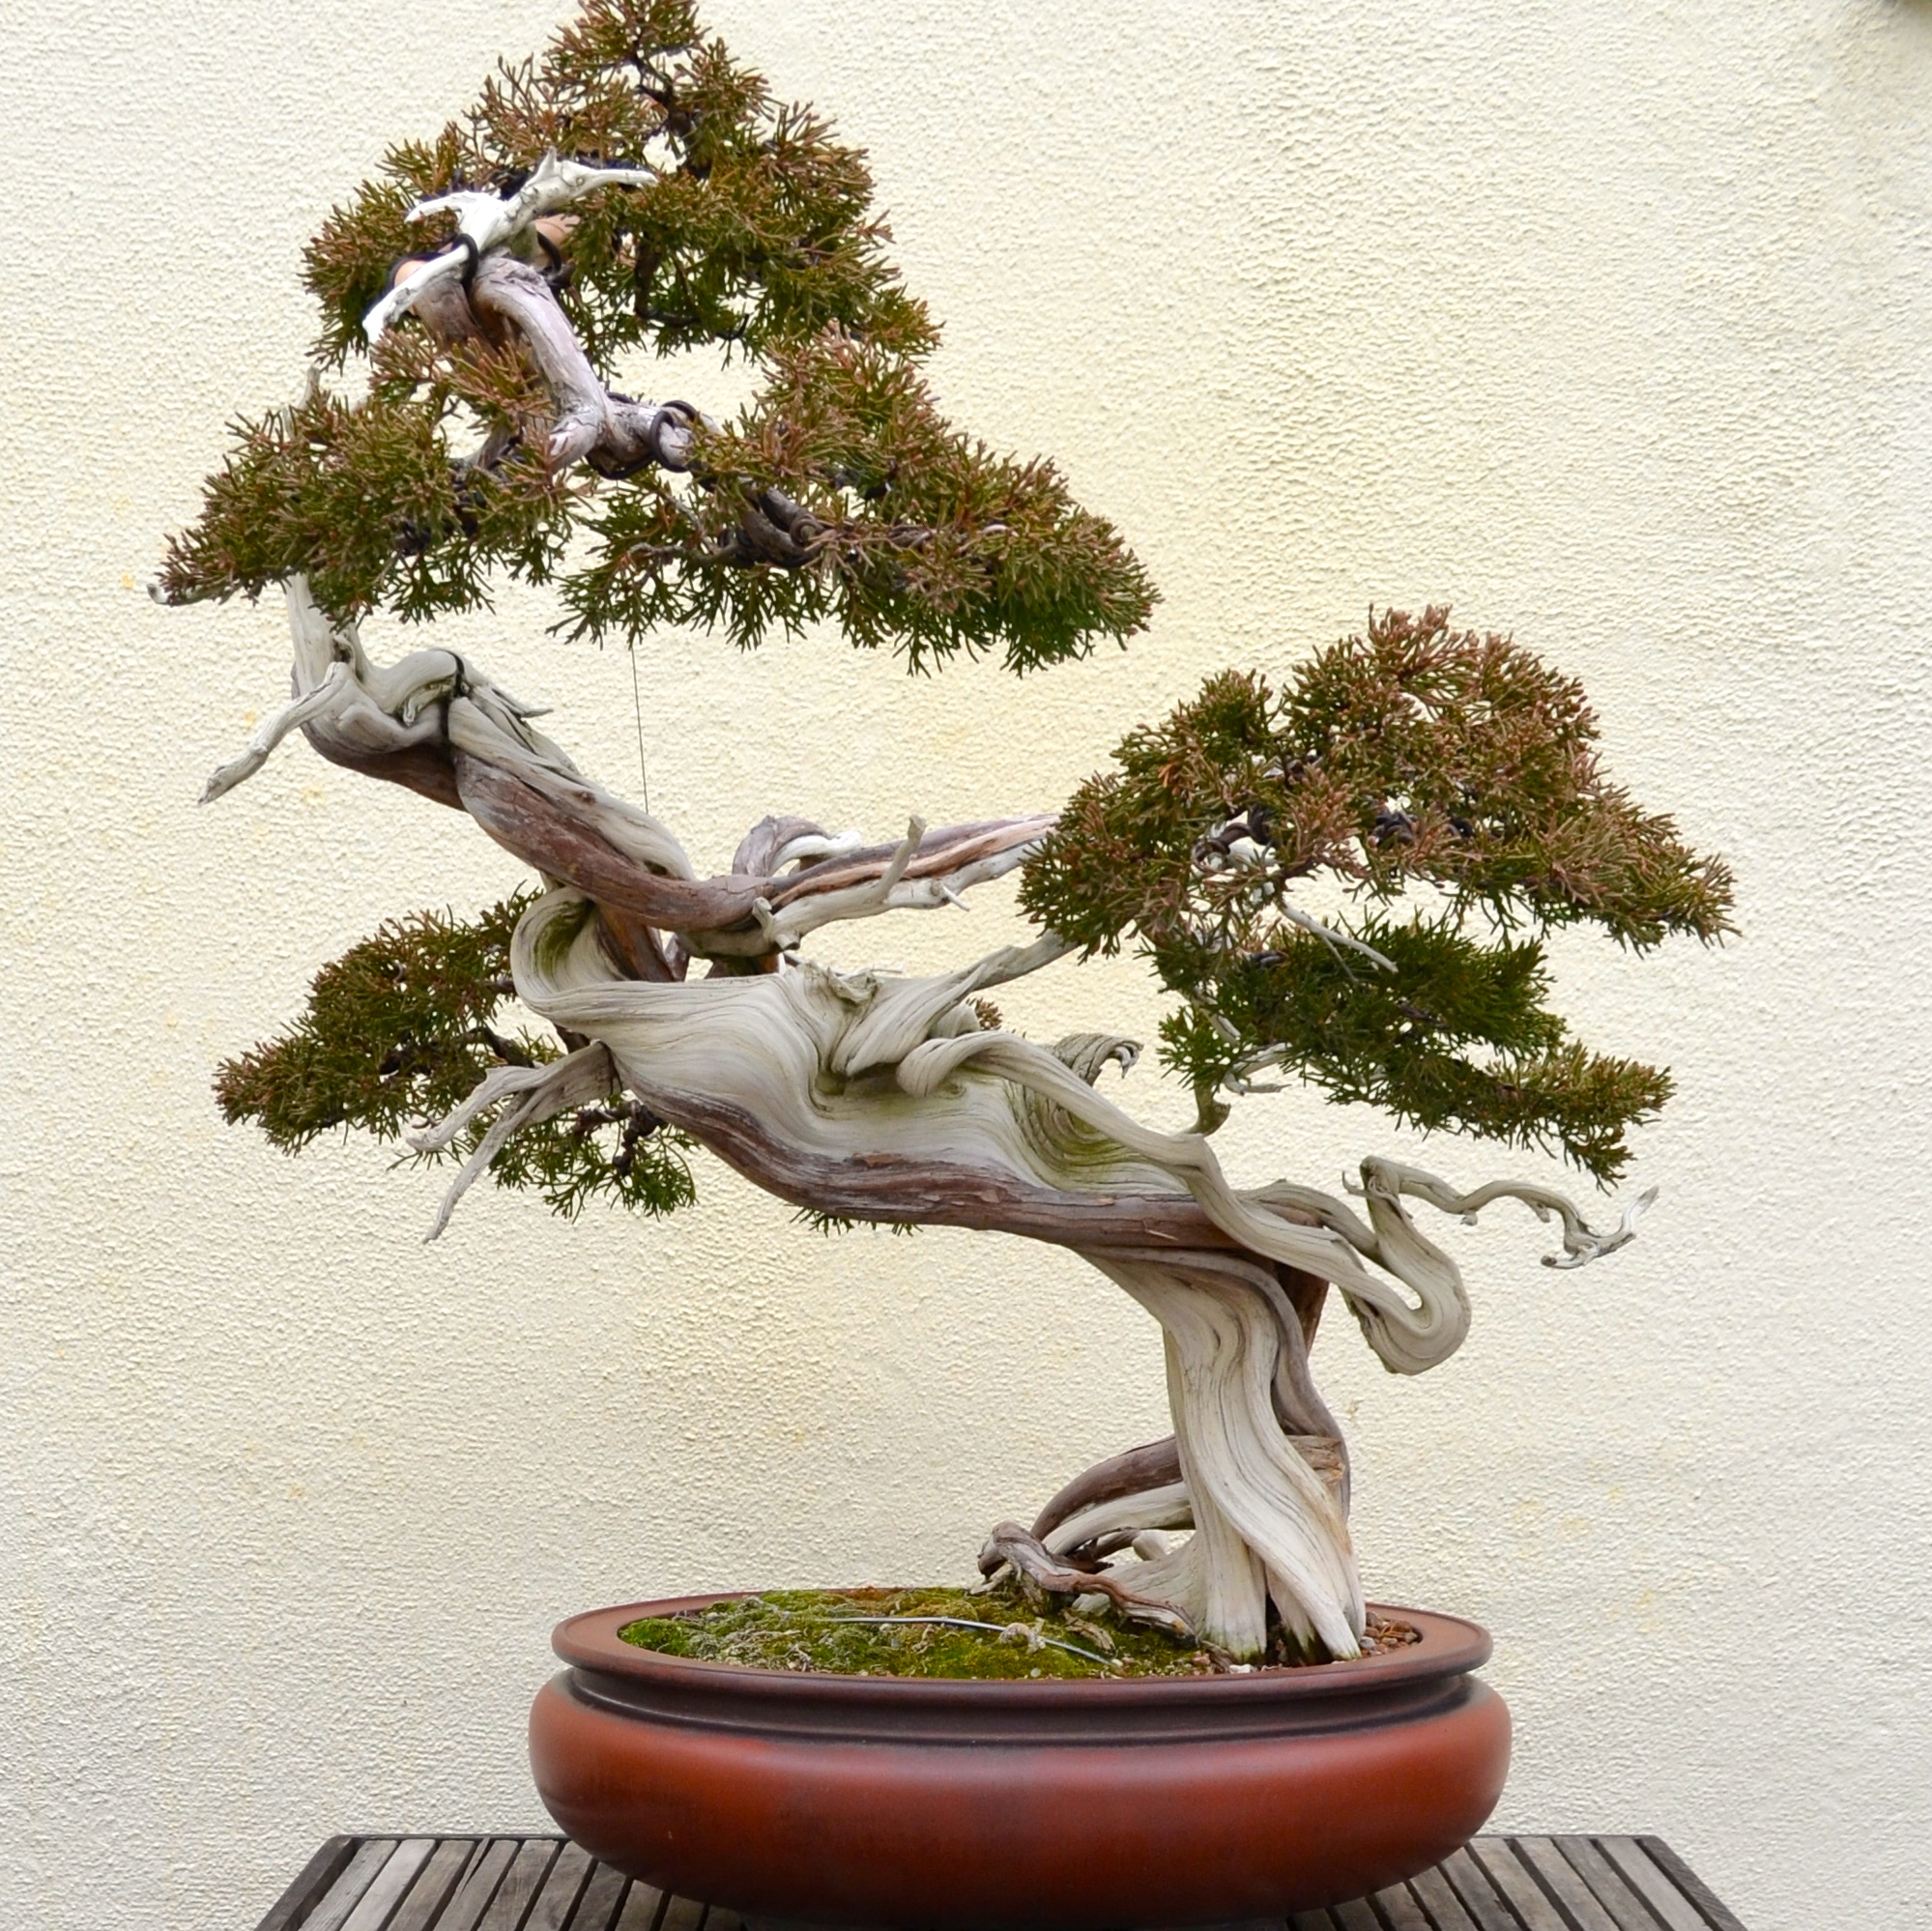 Bonsai tree you can look chinese bonsai you can look indoor bonsai tree care you can look bonsai scissors